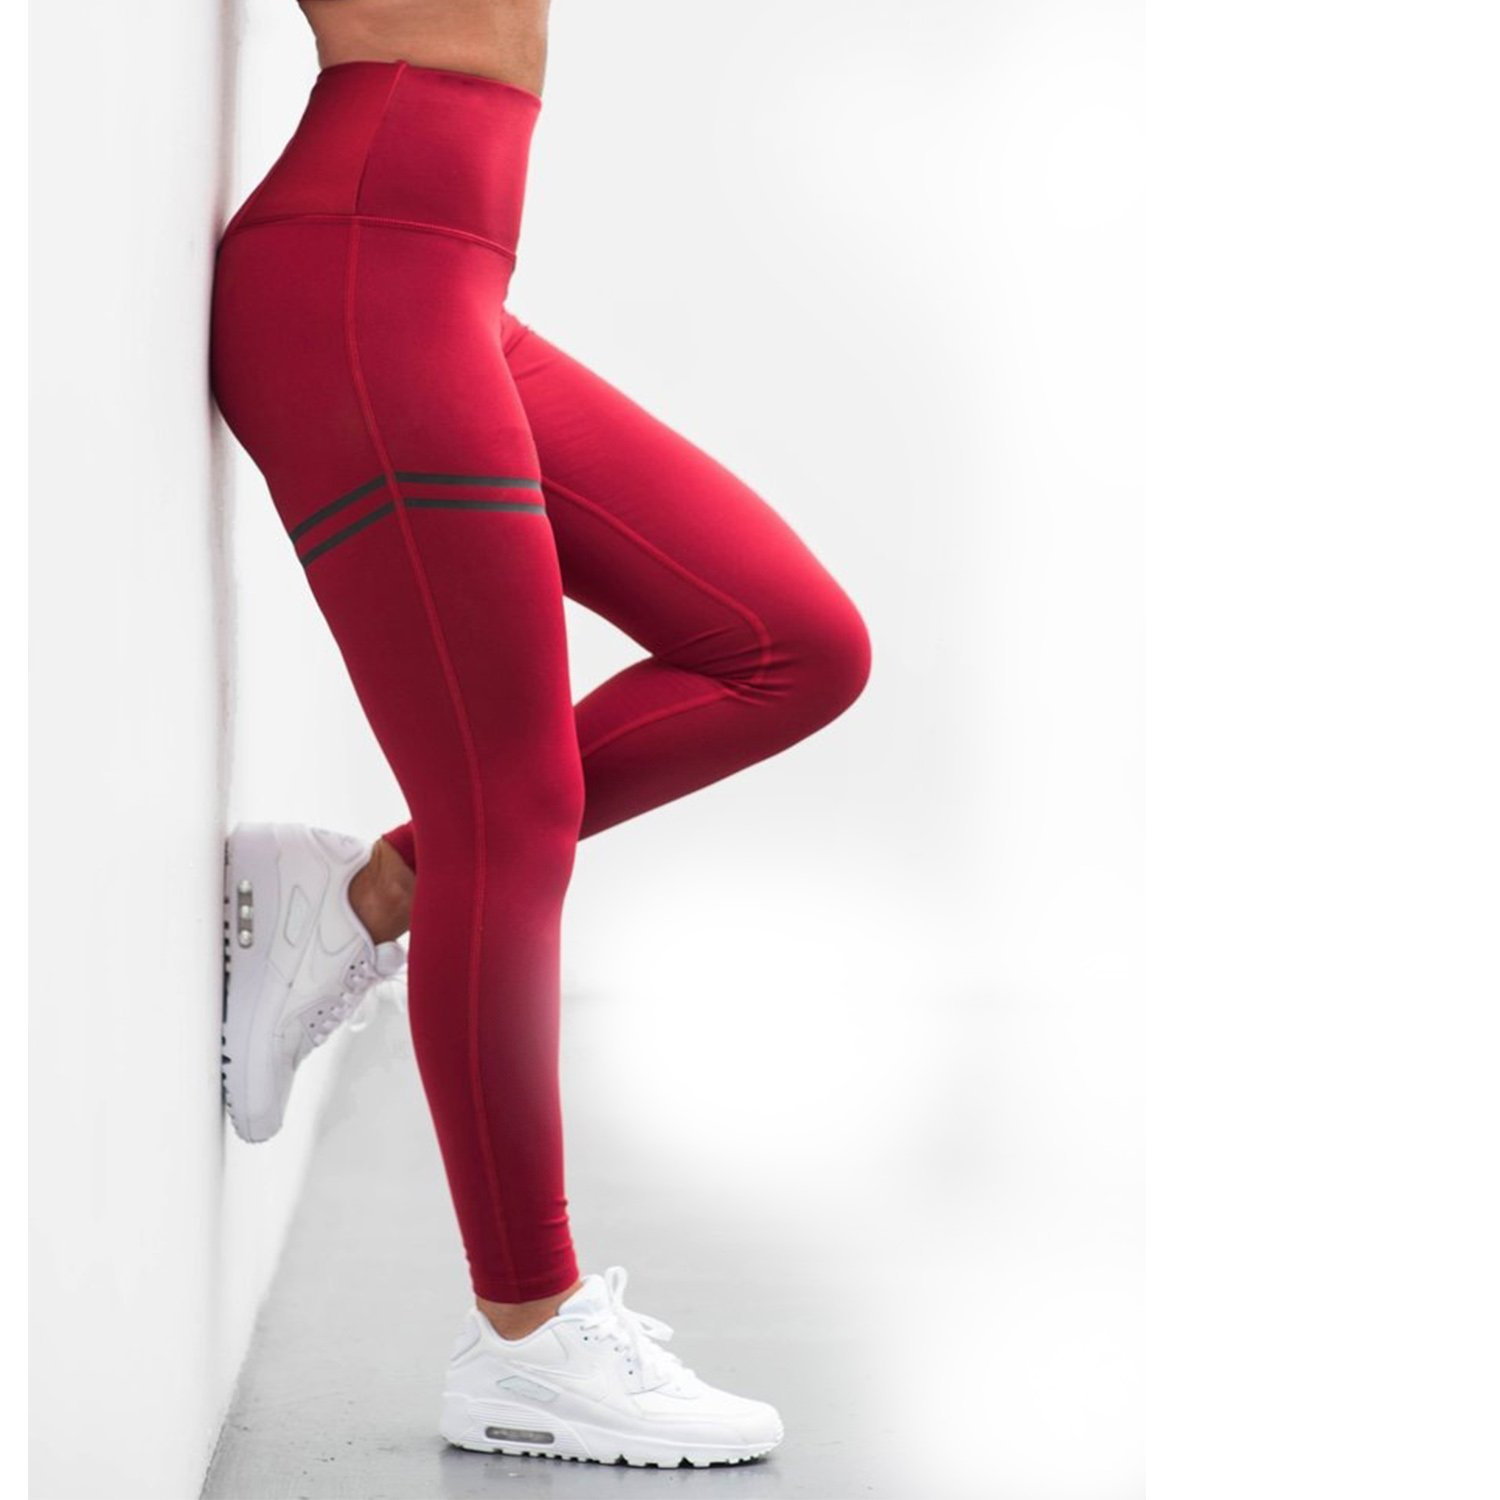 00f0e7a83ccdd8 COLO Womens New Technology Silky Yoga Pants Workout Leggings Running Tights  - Like The Second Skin Red(L)